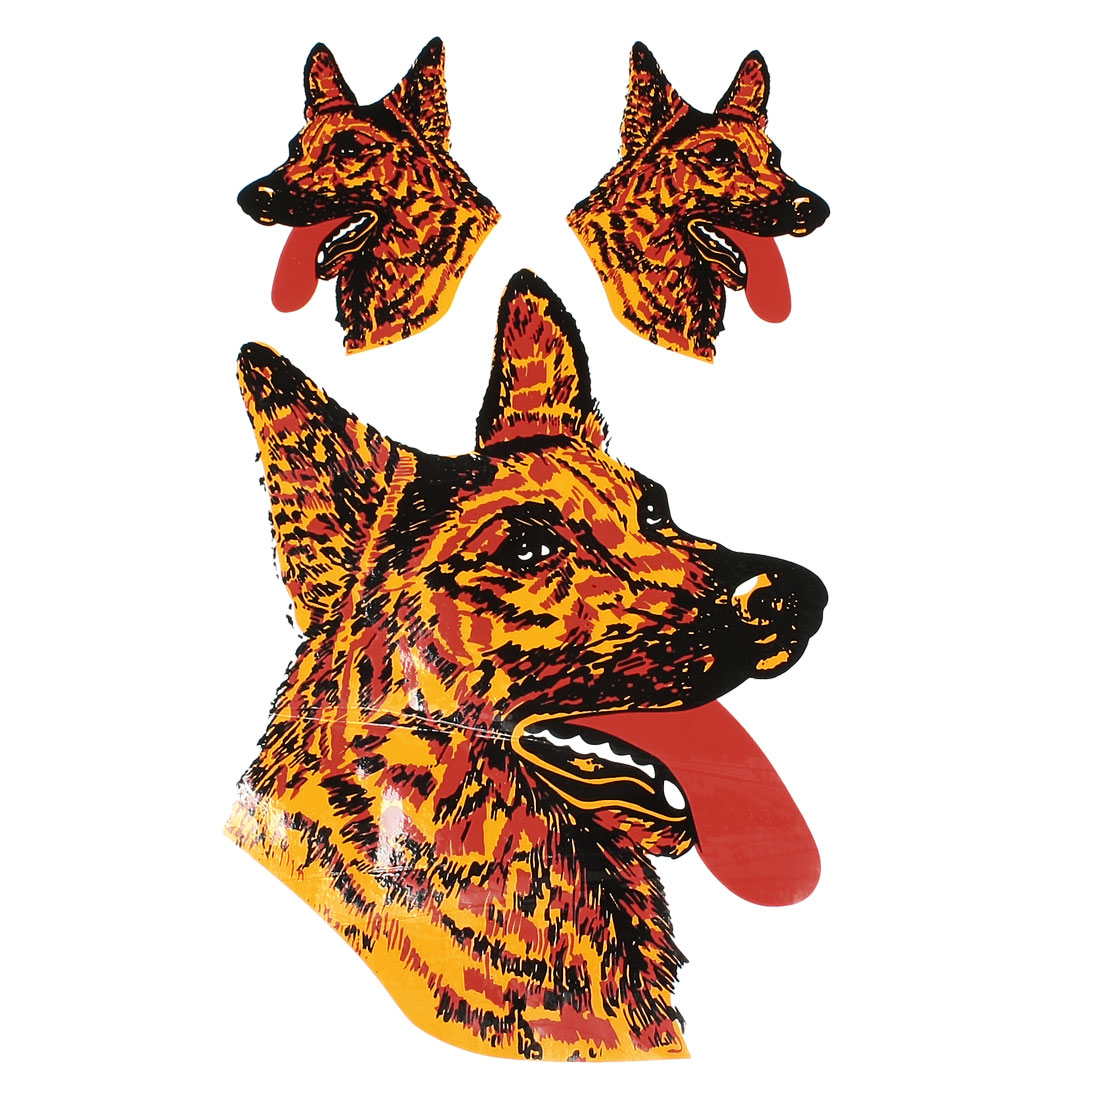 3 in 1 Orange Black Car Decorative Wolf Pattern Decal Sticker